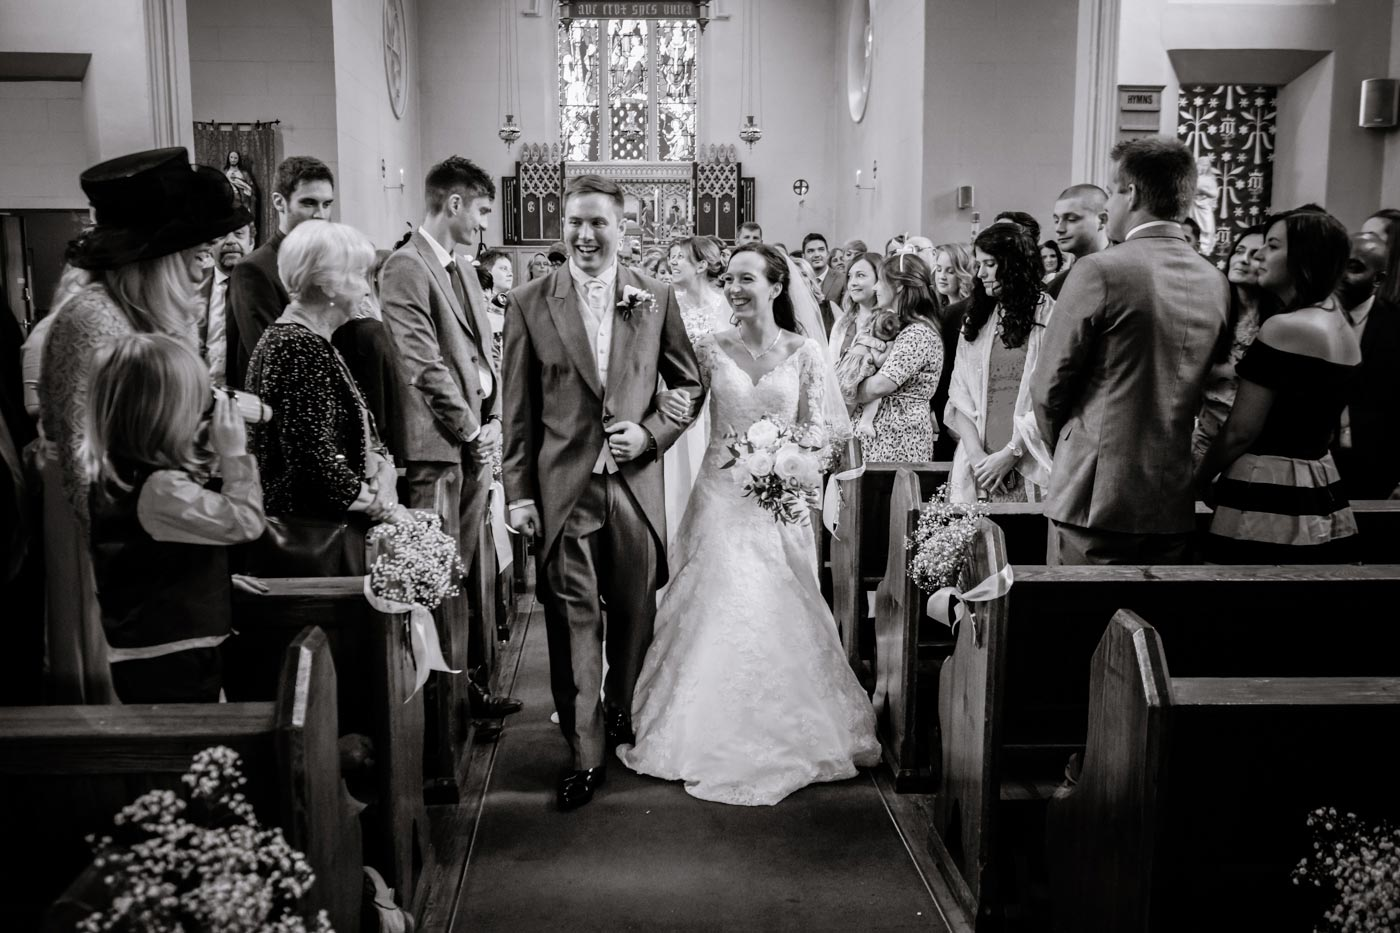 Bride and groom walking down the aisle by documentay wedding photographer Birmingham Clive Blair Photography